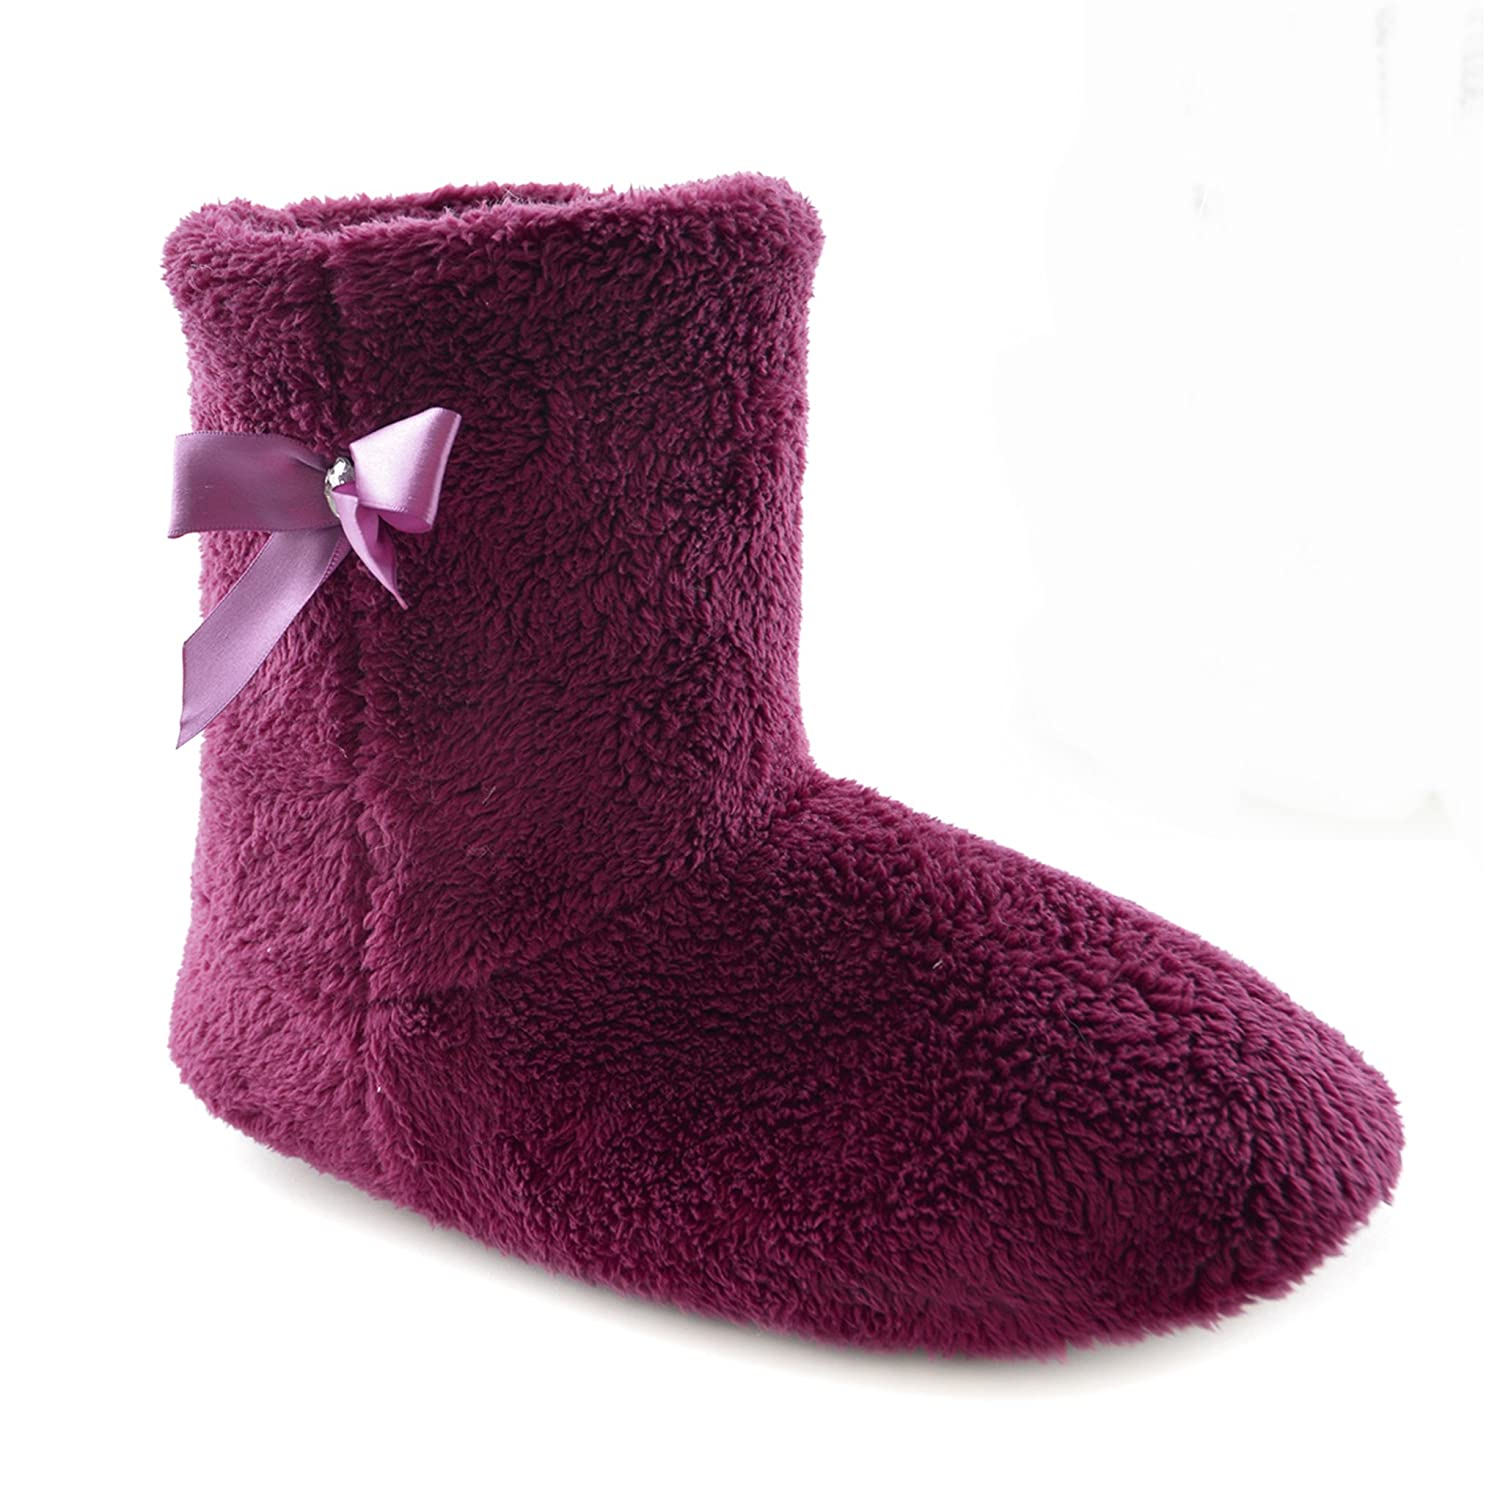 New Women's Grey Pink Hearts Warm Fleece Fur Lined Slipper Ankle Boots Booties